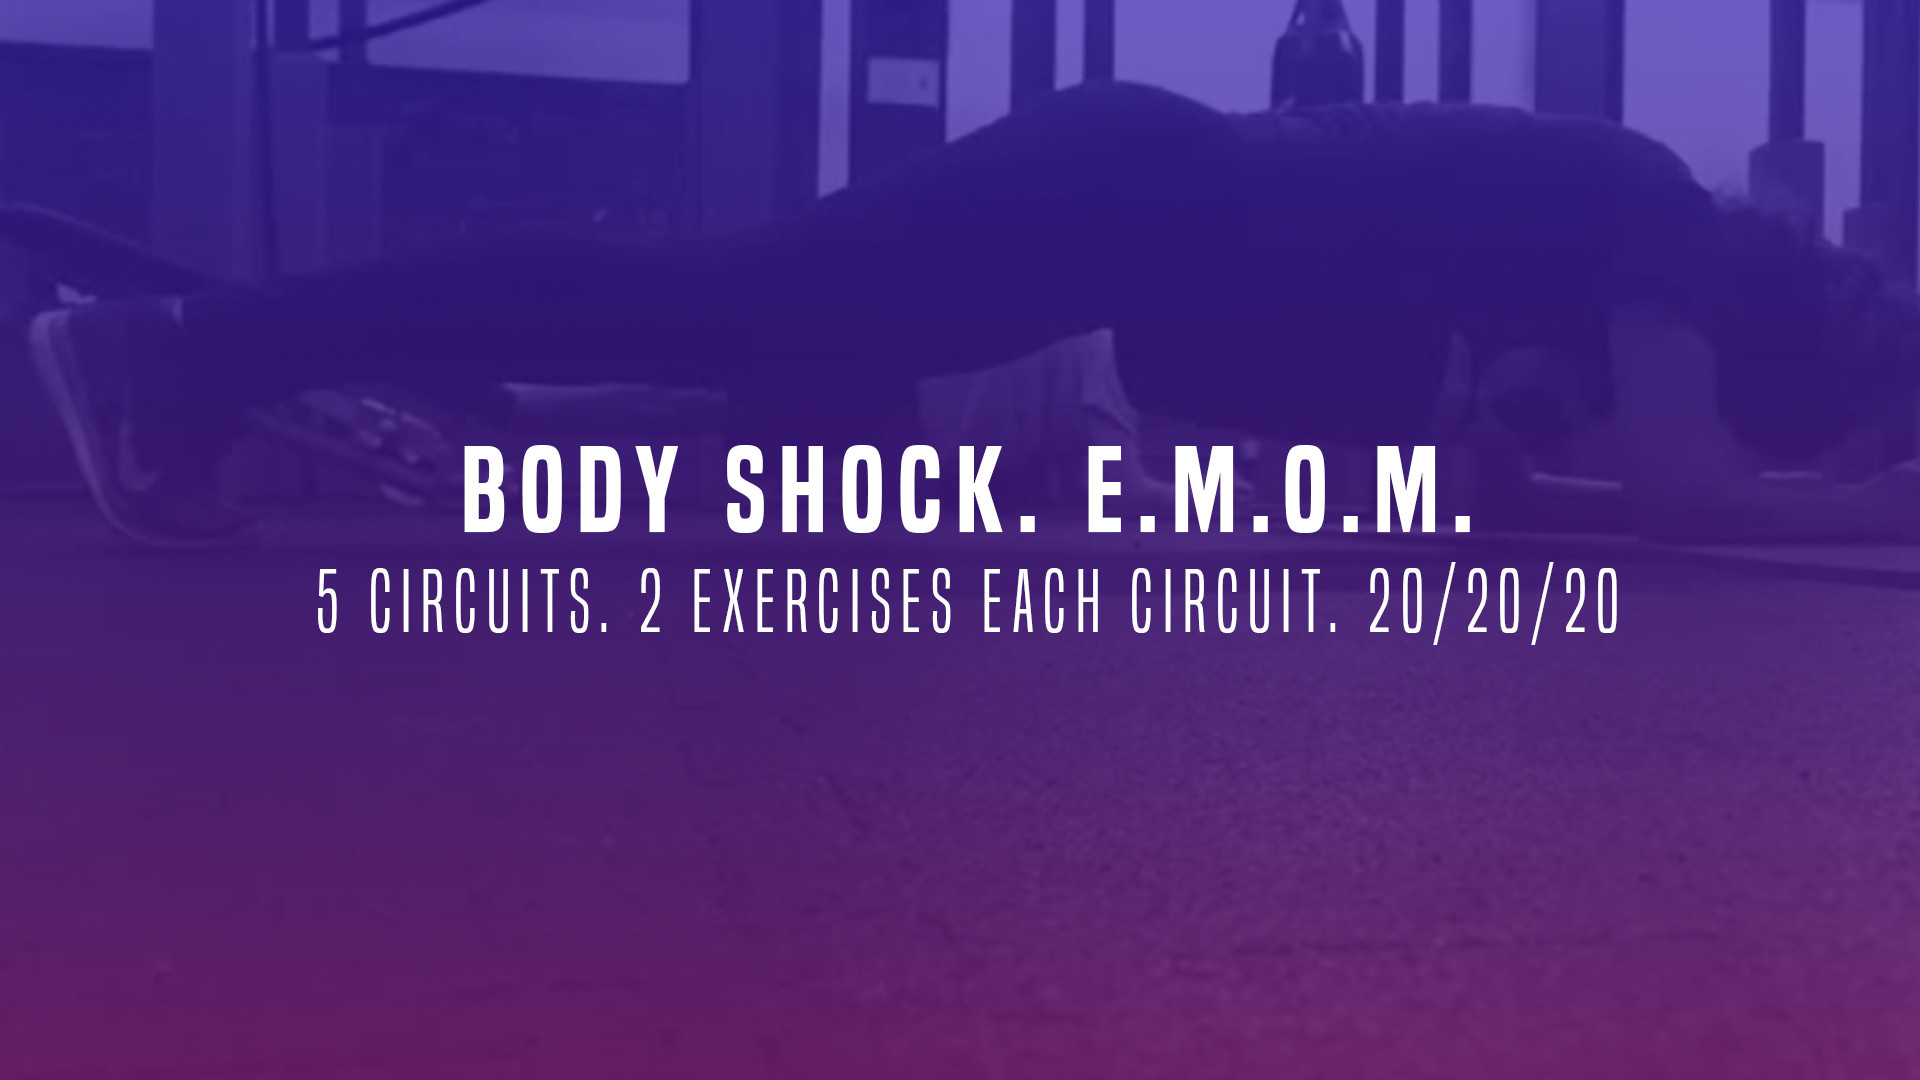 WOD 9: Body Shock. 5 Circuits. 2 Exercises each Circuit. 20/20/20